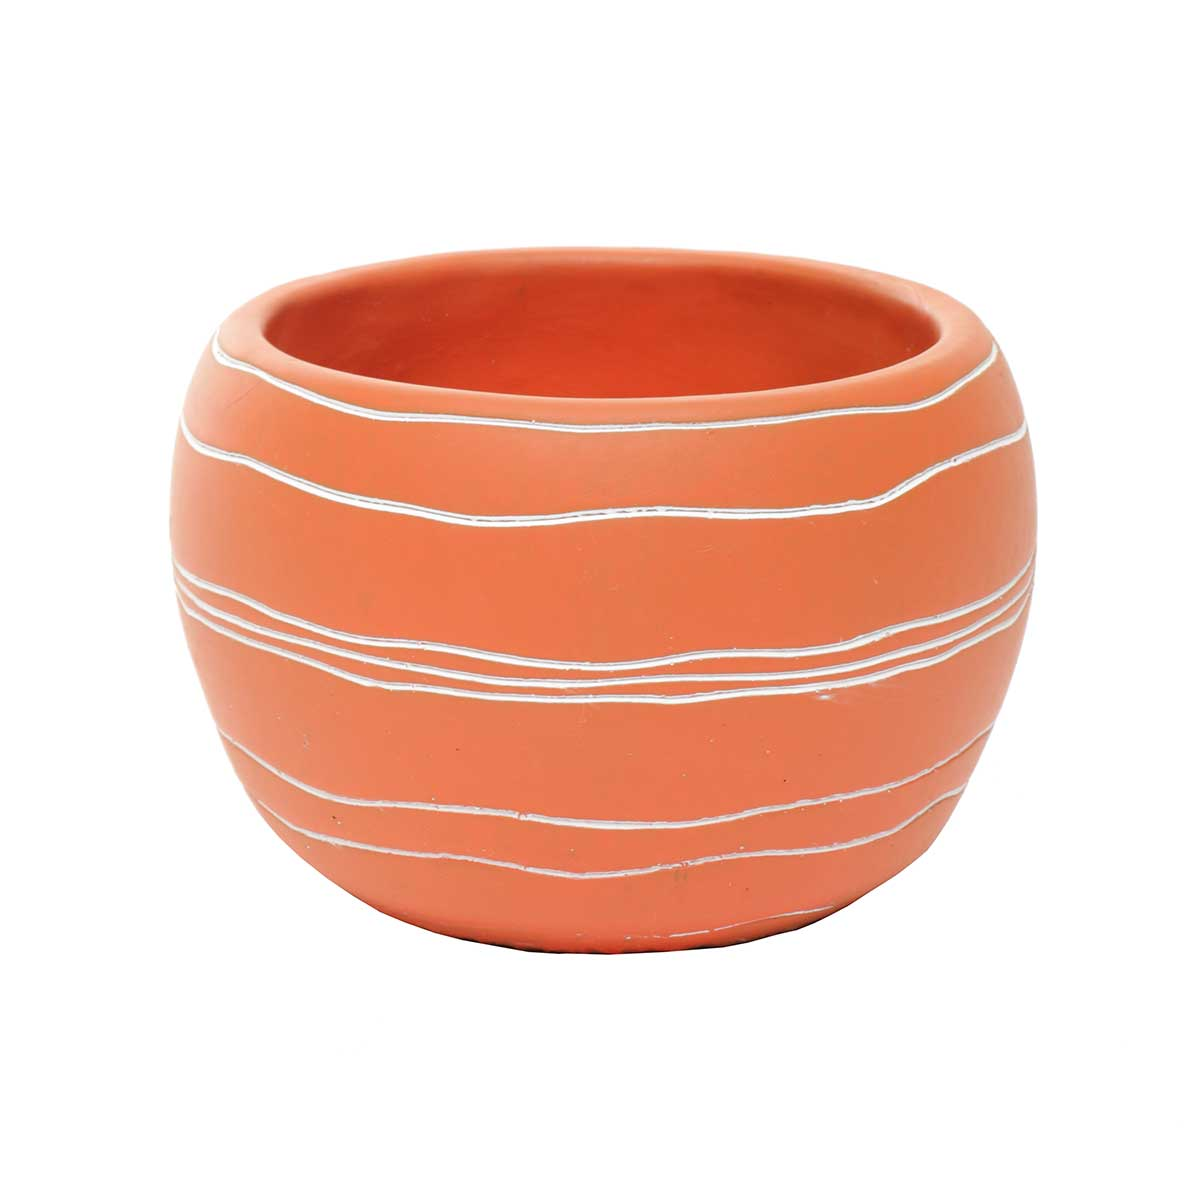 "Retro Chic Pot 5""x3.75"" Coral"